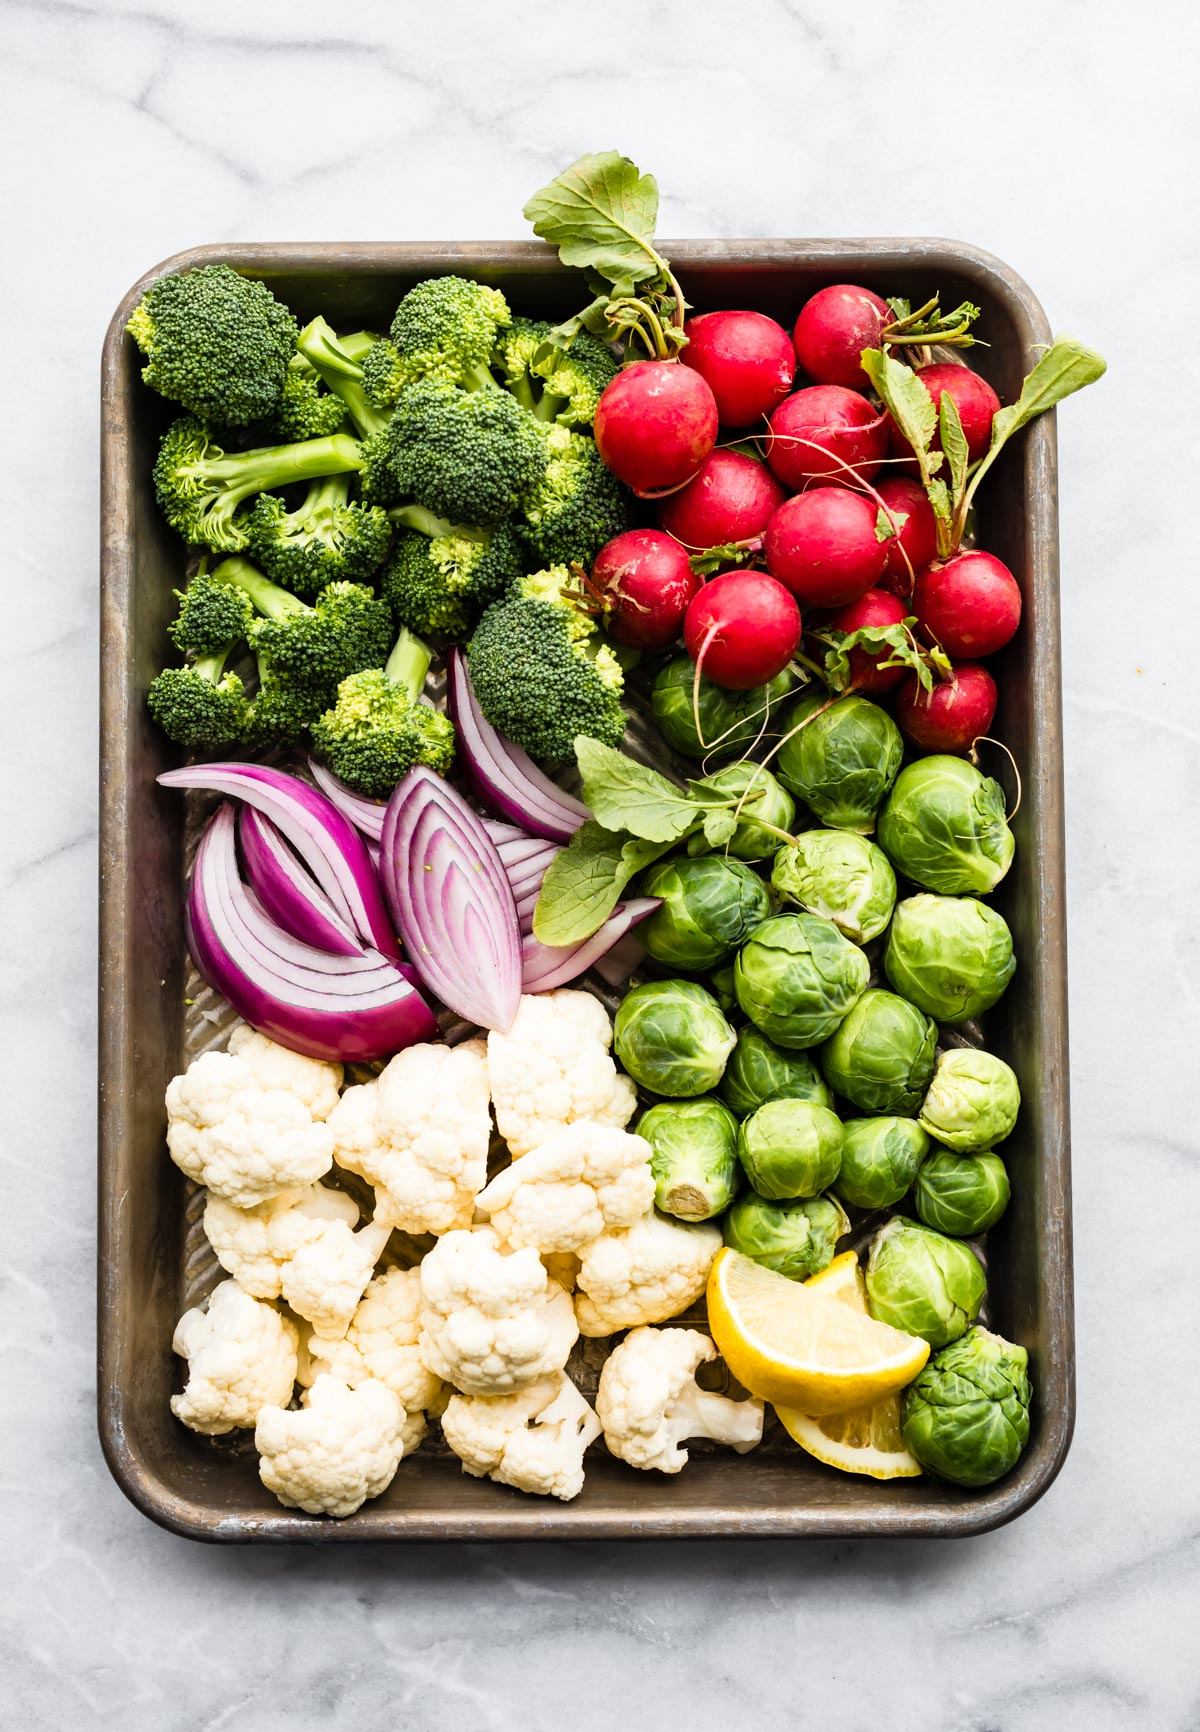 sheet pan of raw vegetables to be cooked in air fryer